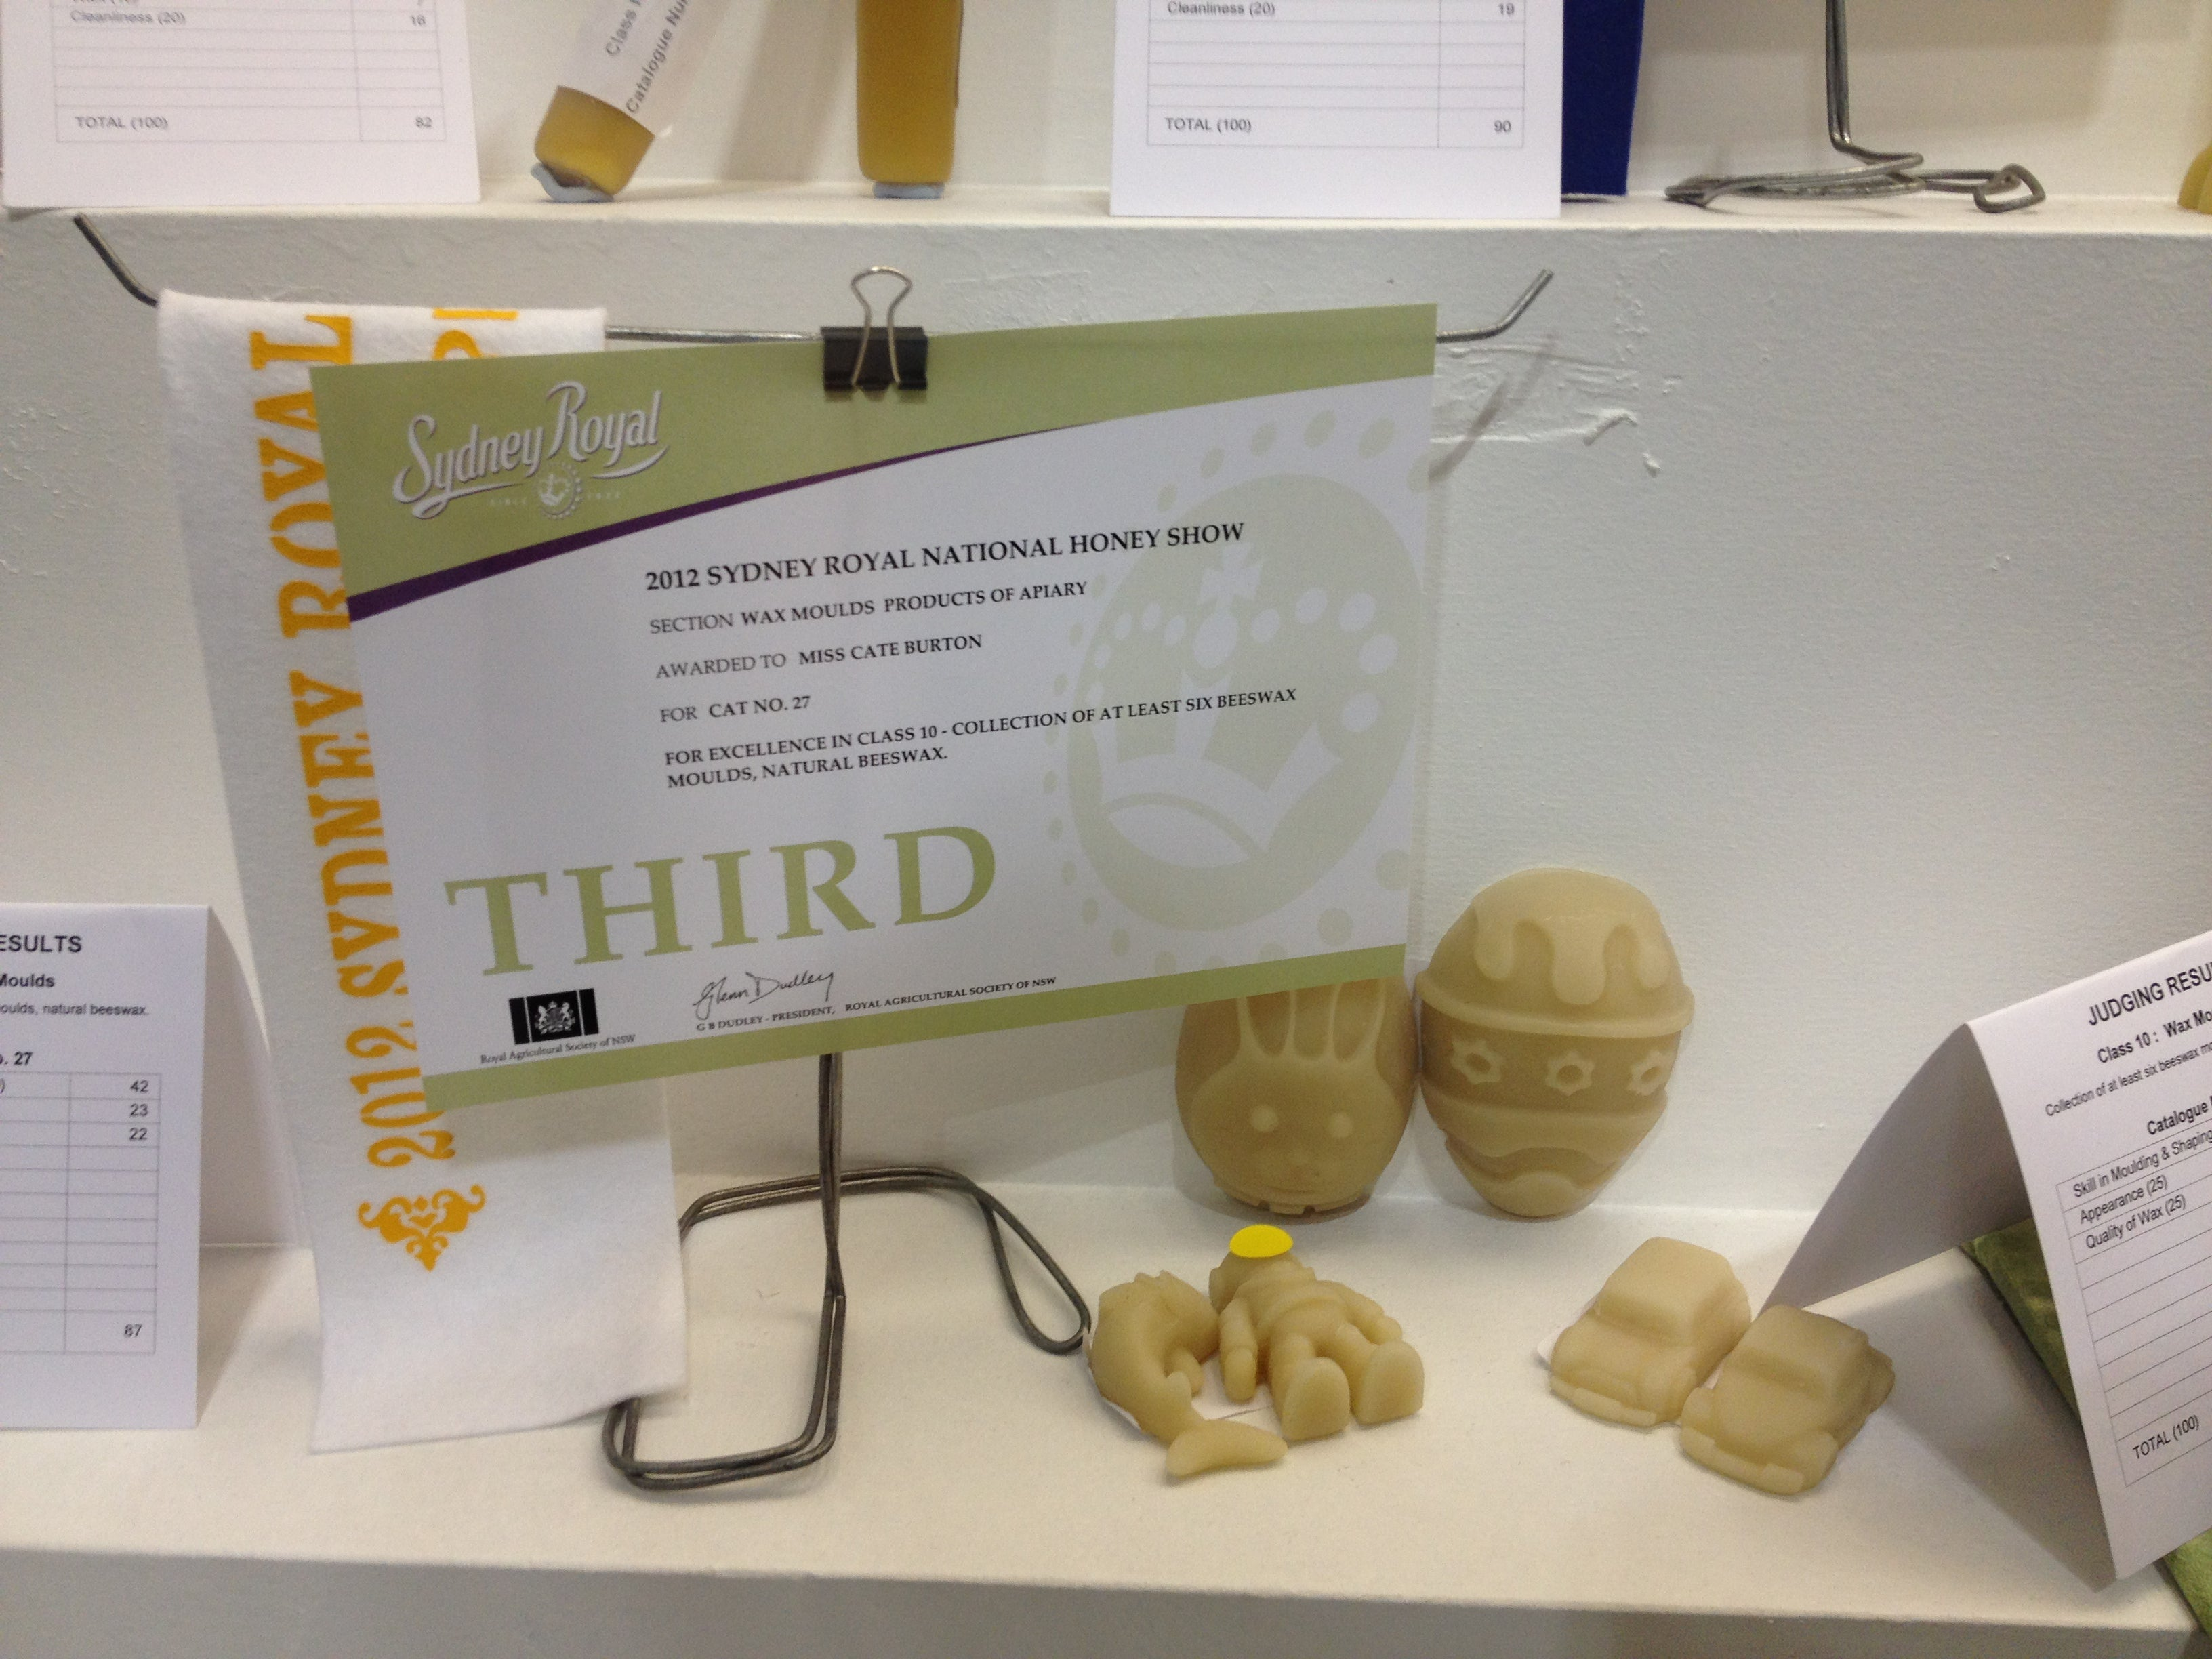 Third place in Beeswax Moulds